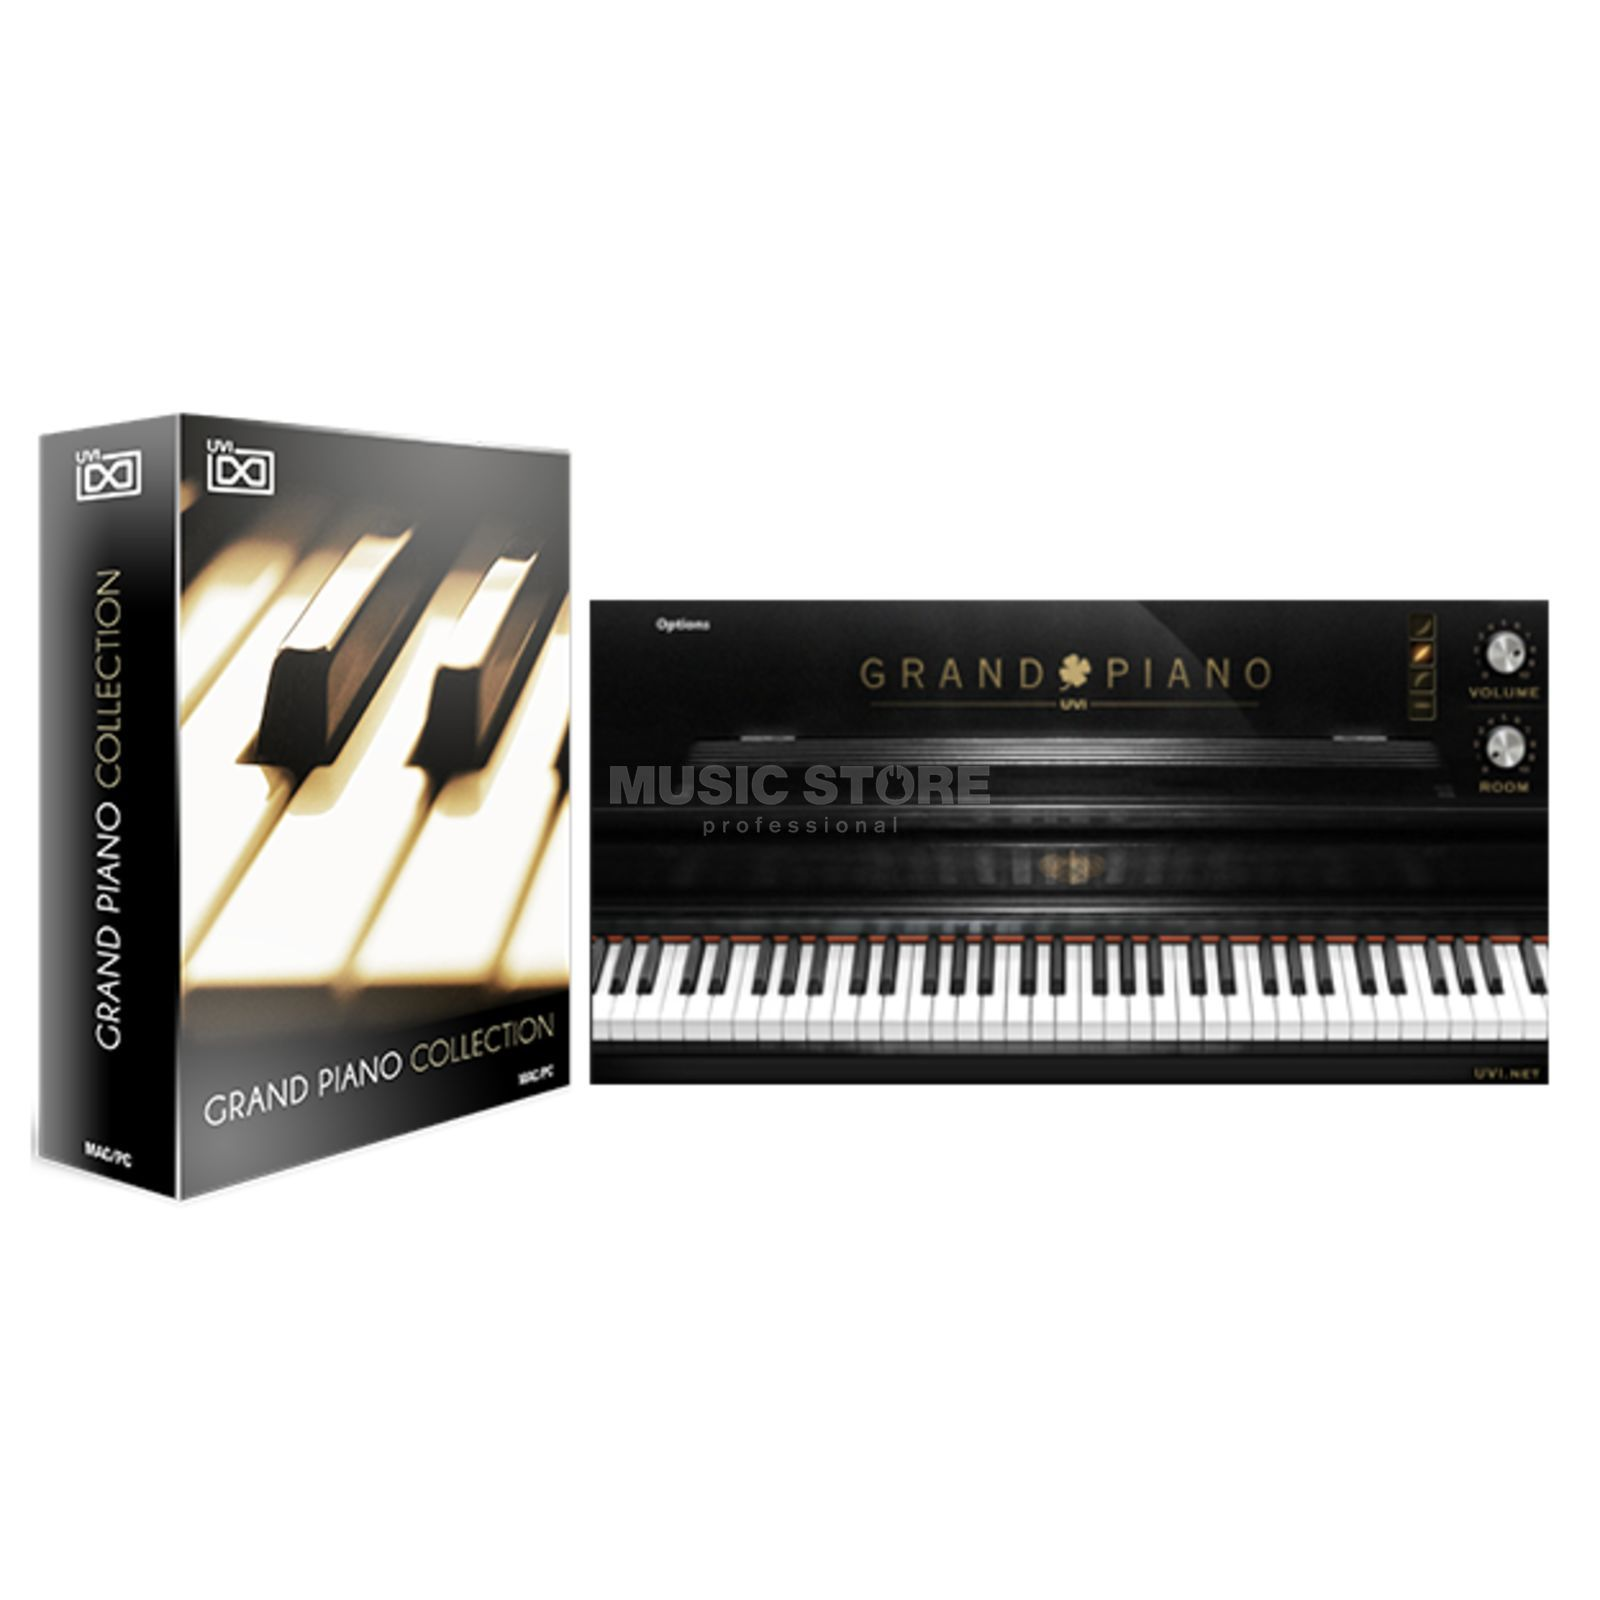 UVI Sounds & Software F Grand Piano 278 CODE Einzelstück B-Stock Produktbild